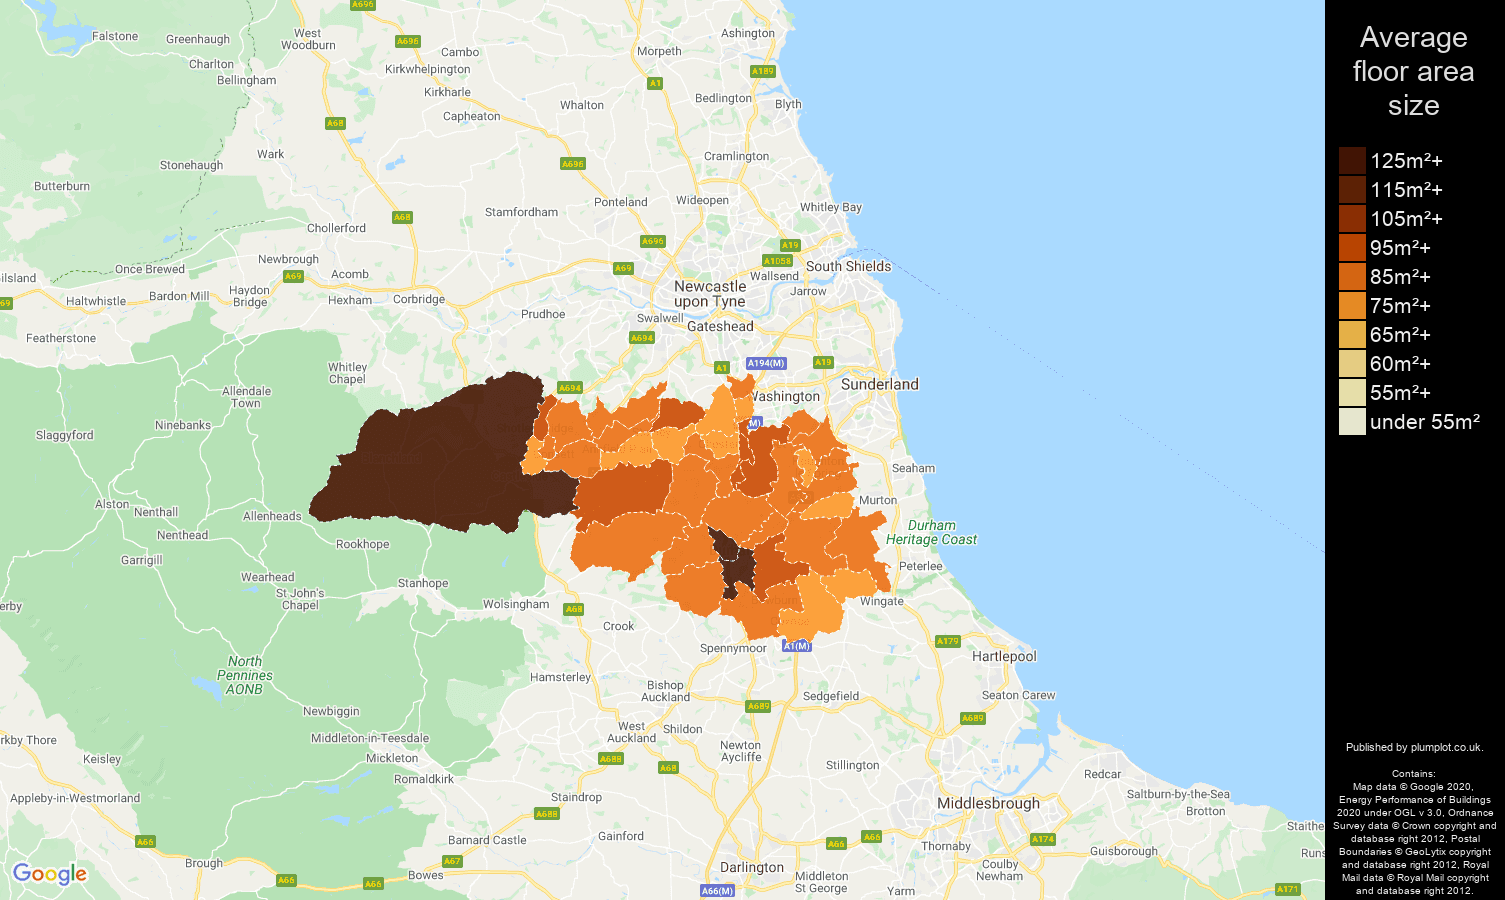 Durham map of average floor area size of houses